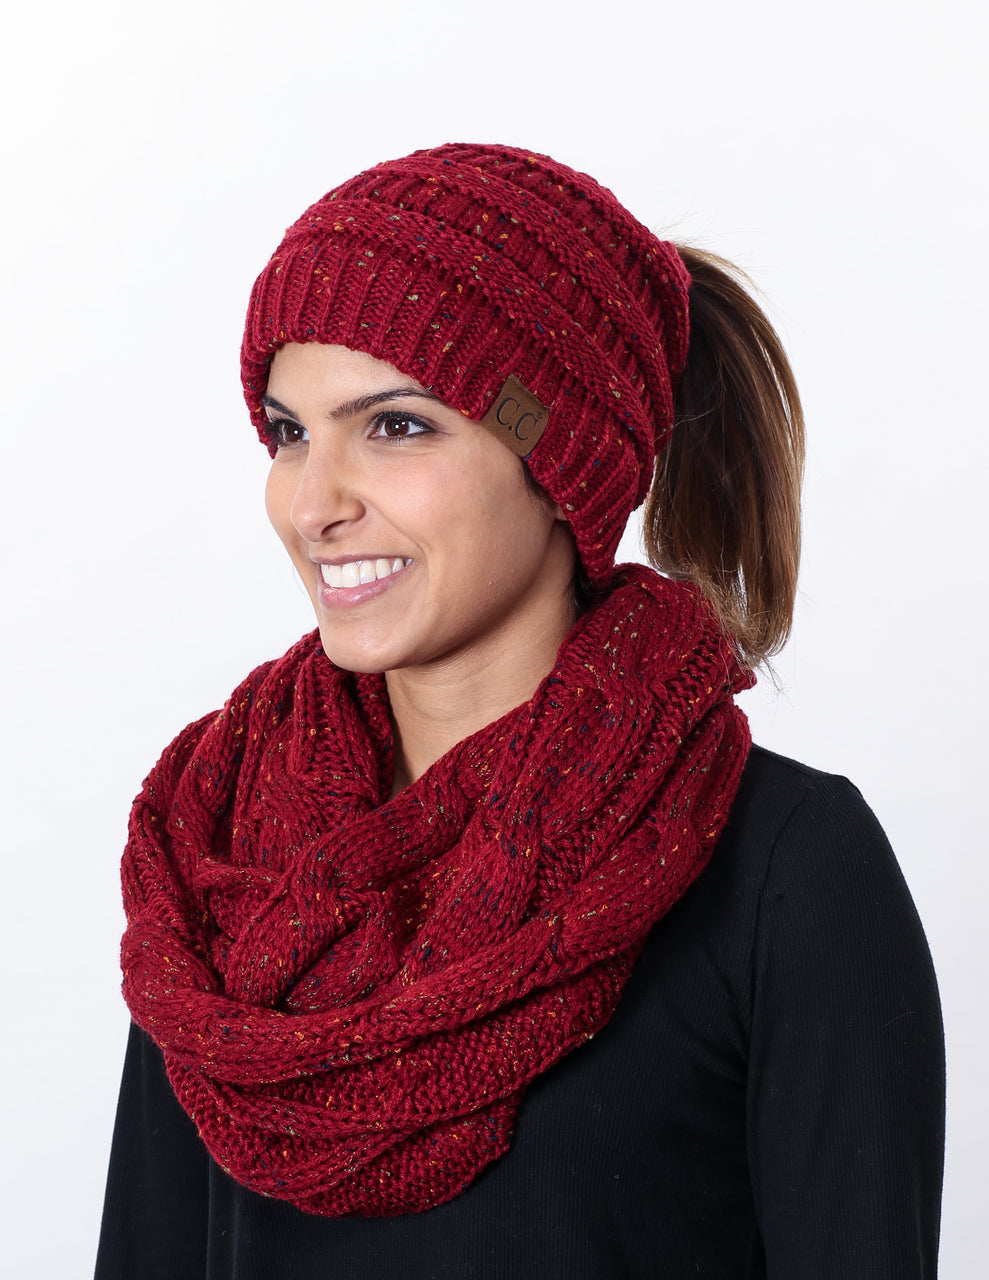 CC Messy Bun BeanieTail Bundled With Matching Infinity Scarf - Confetti Burgundy